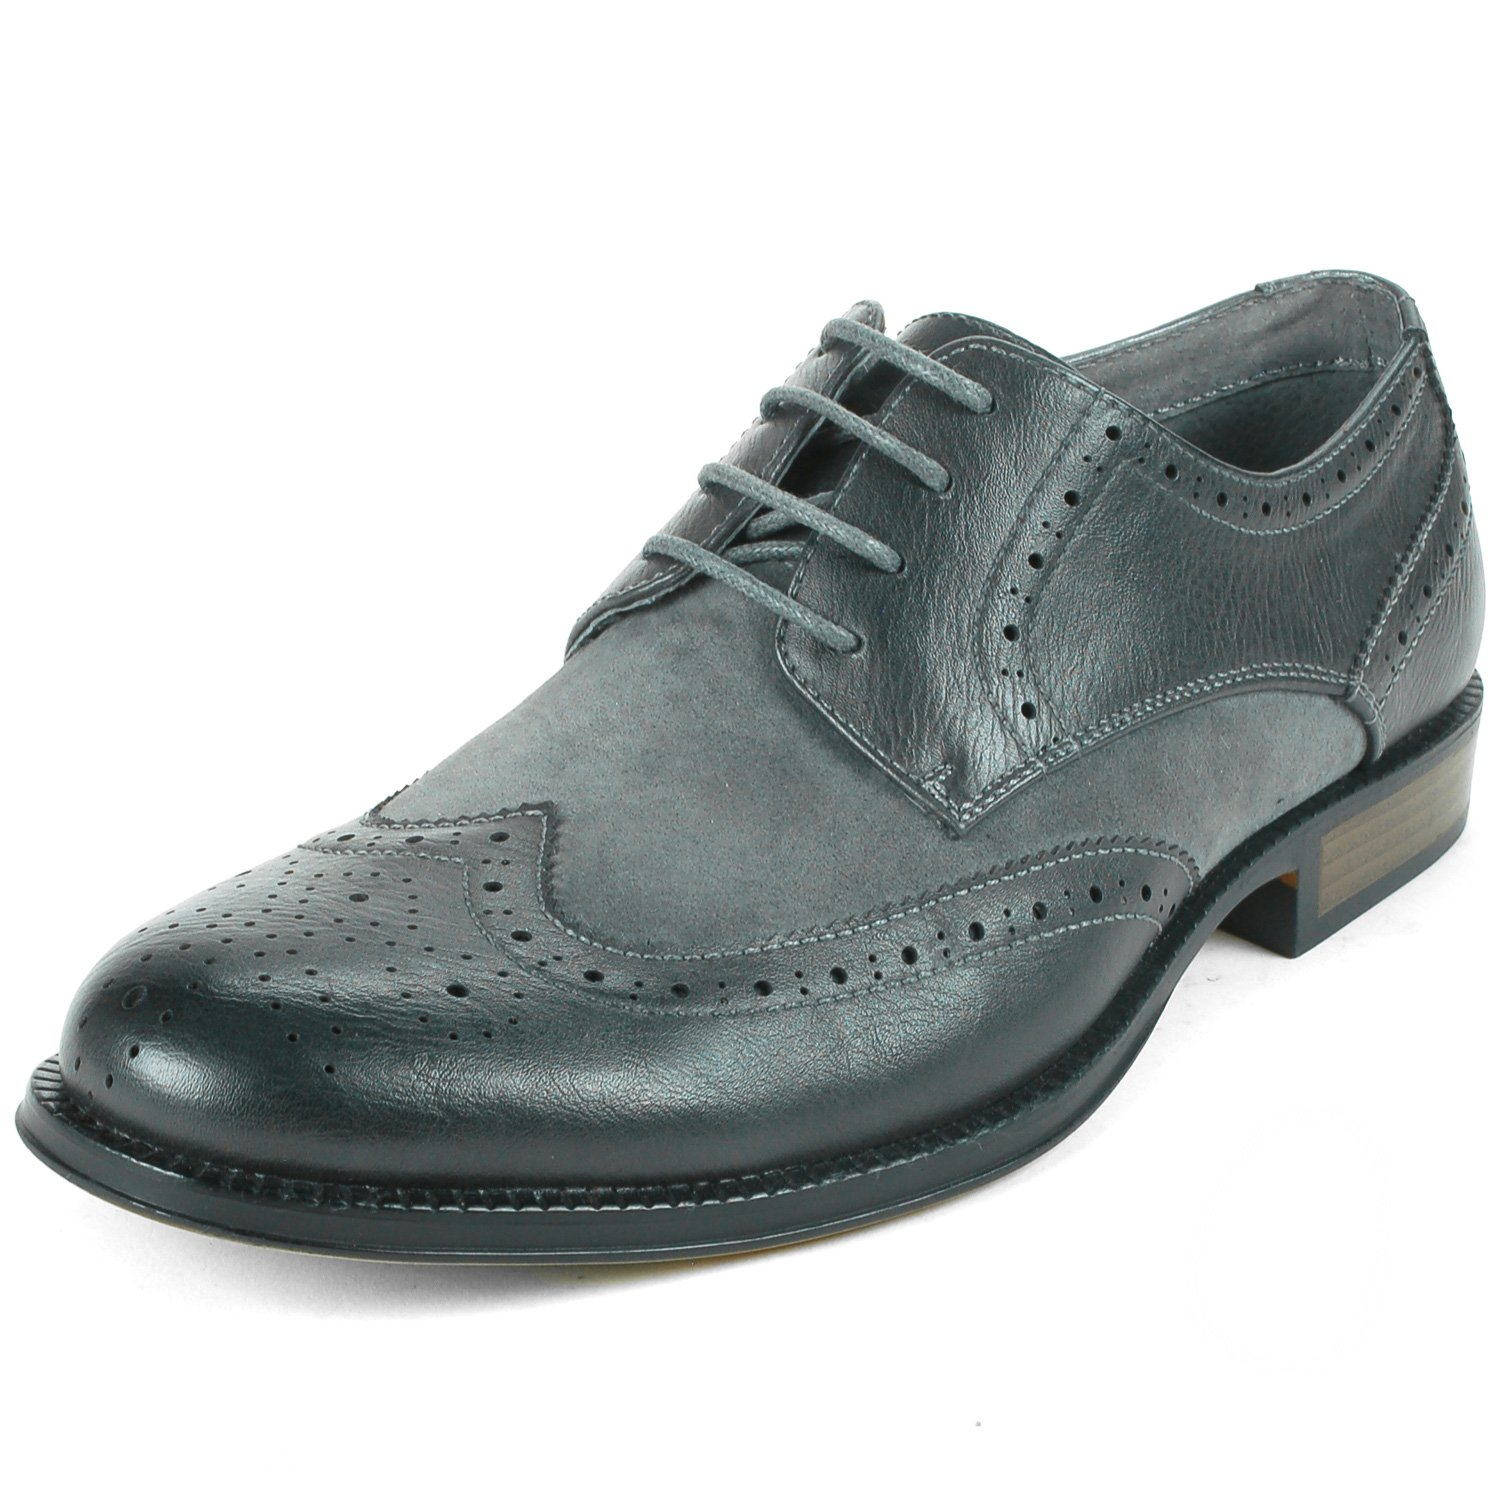 1940s Style Mens Shoes  Wing Tip Oxfords Two-tone Brogue Medallion $34.99 AT vintagedancer.com